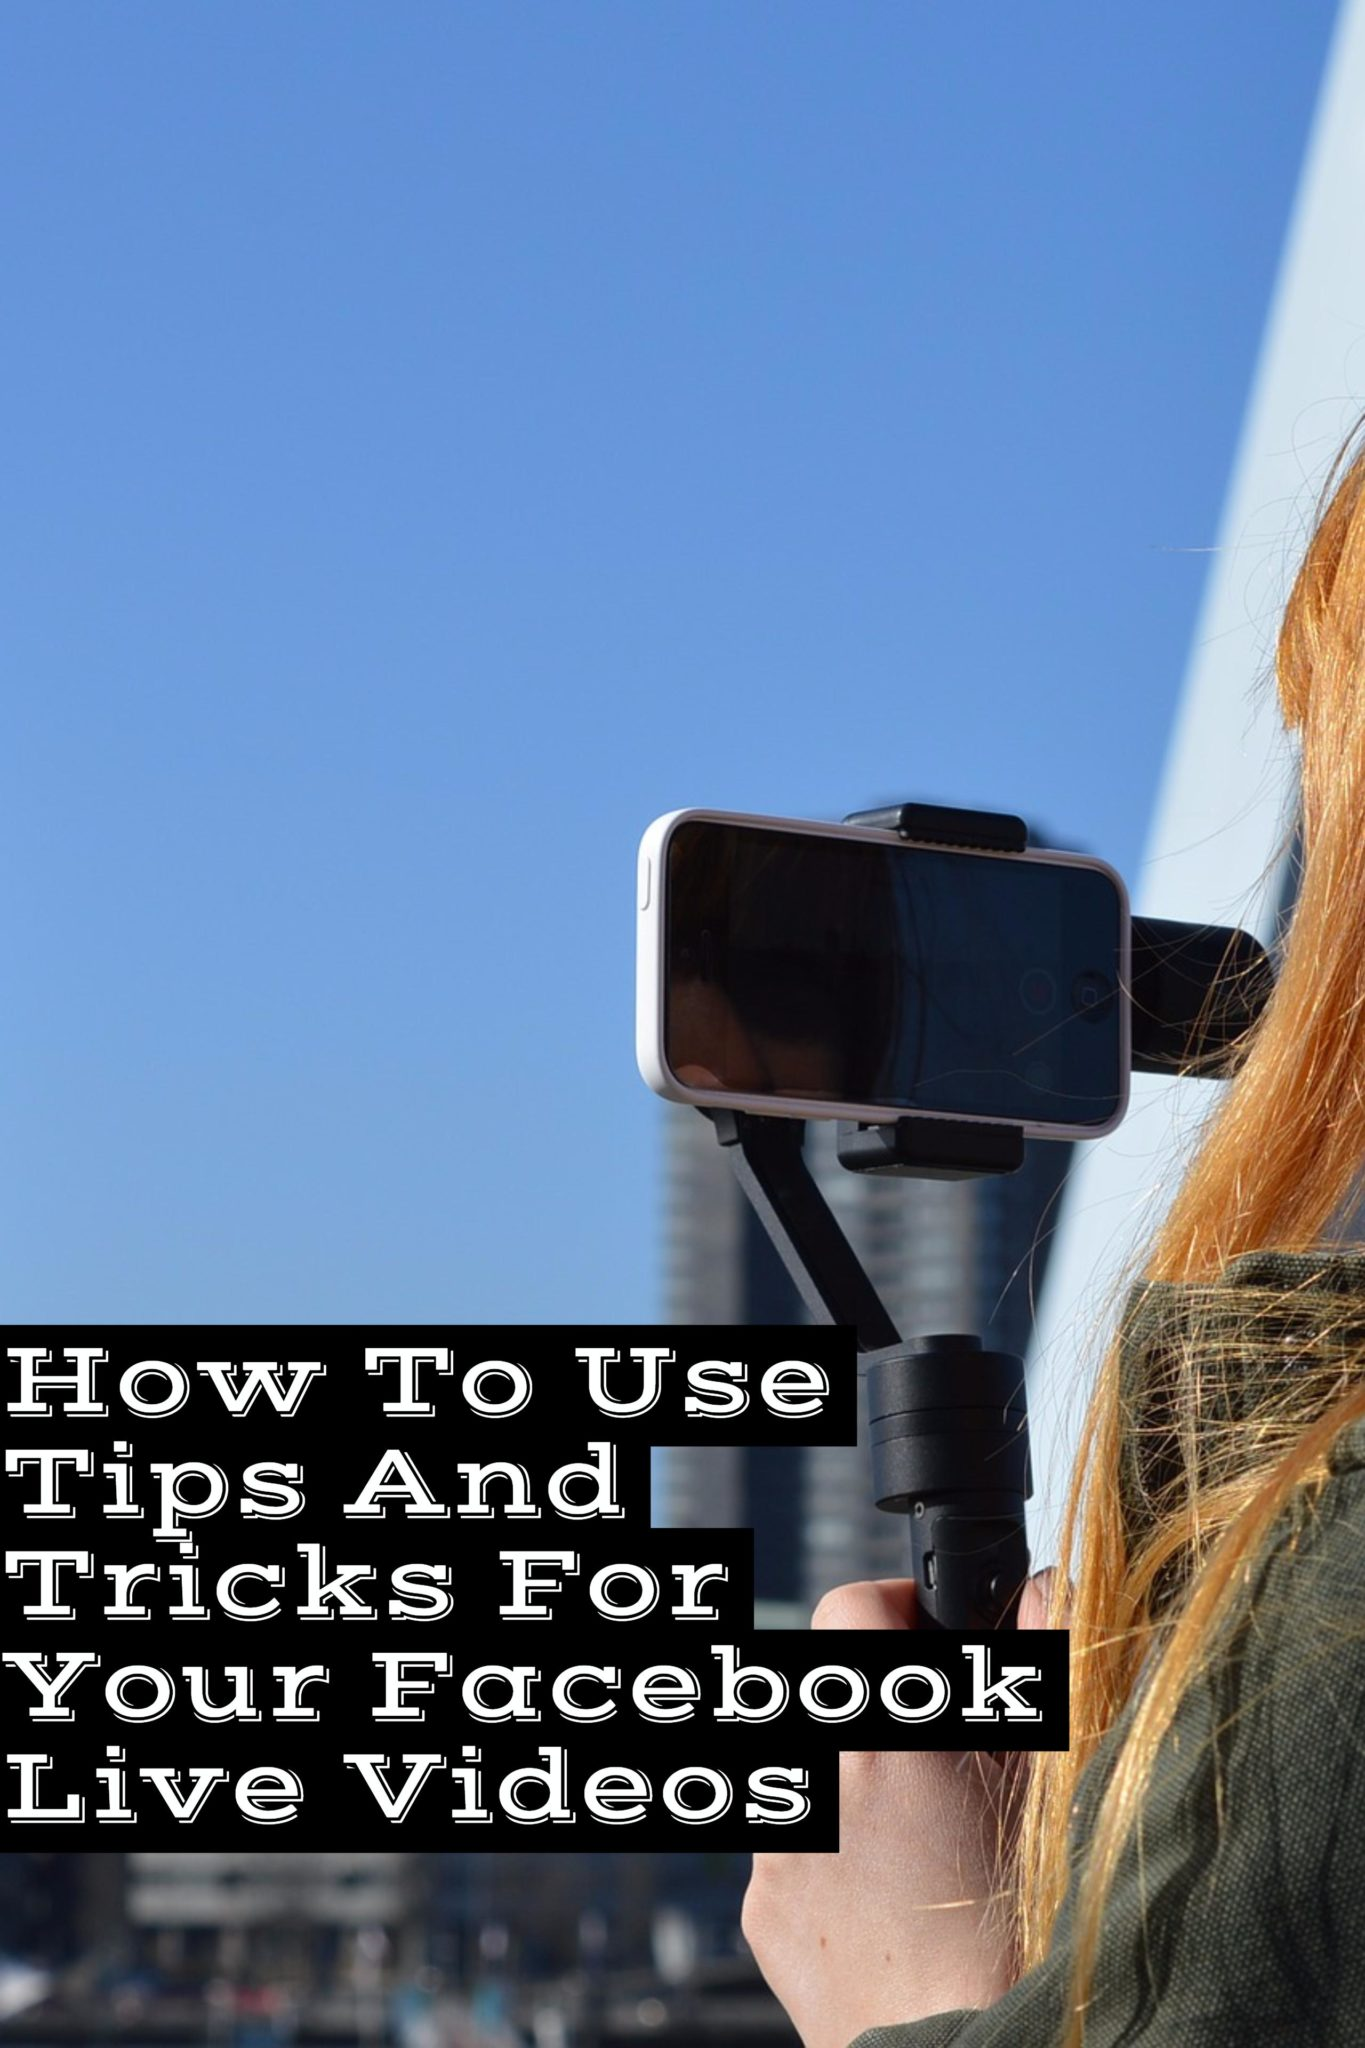 Struggling with content for your next Facebook Live? Tips and tricks are a great way to get started. Click here for one of my favorite ways to use Facebook Live!